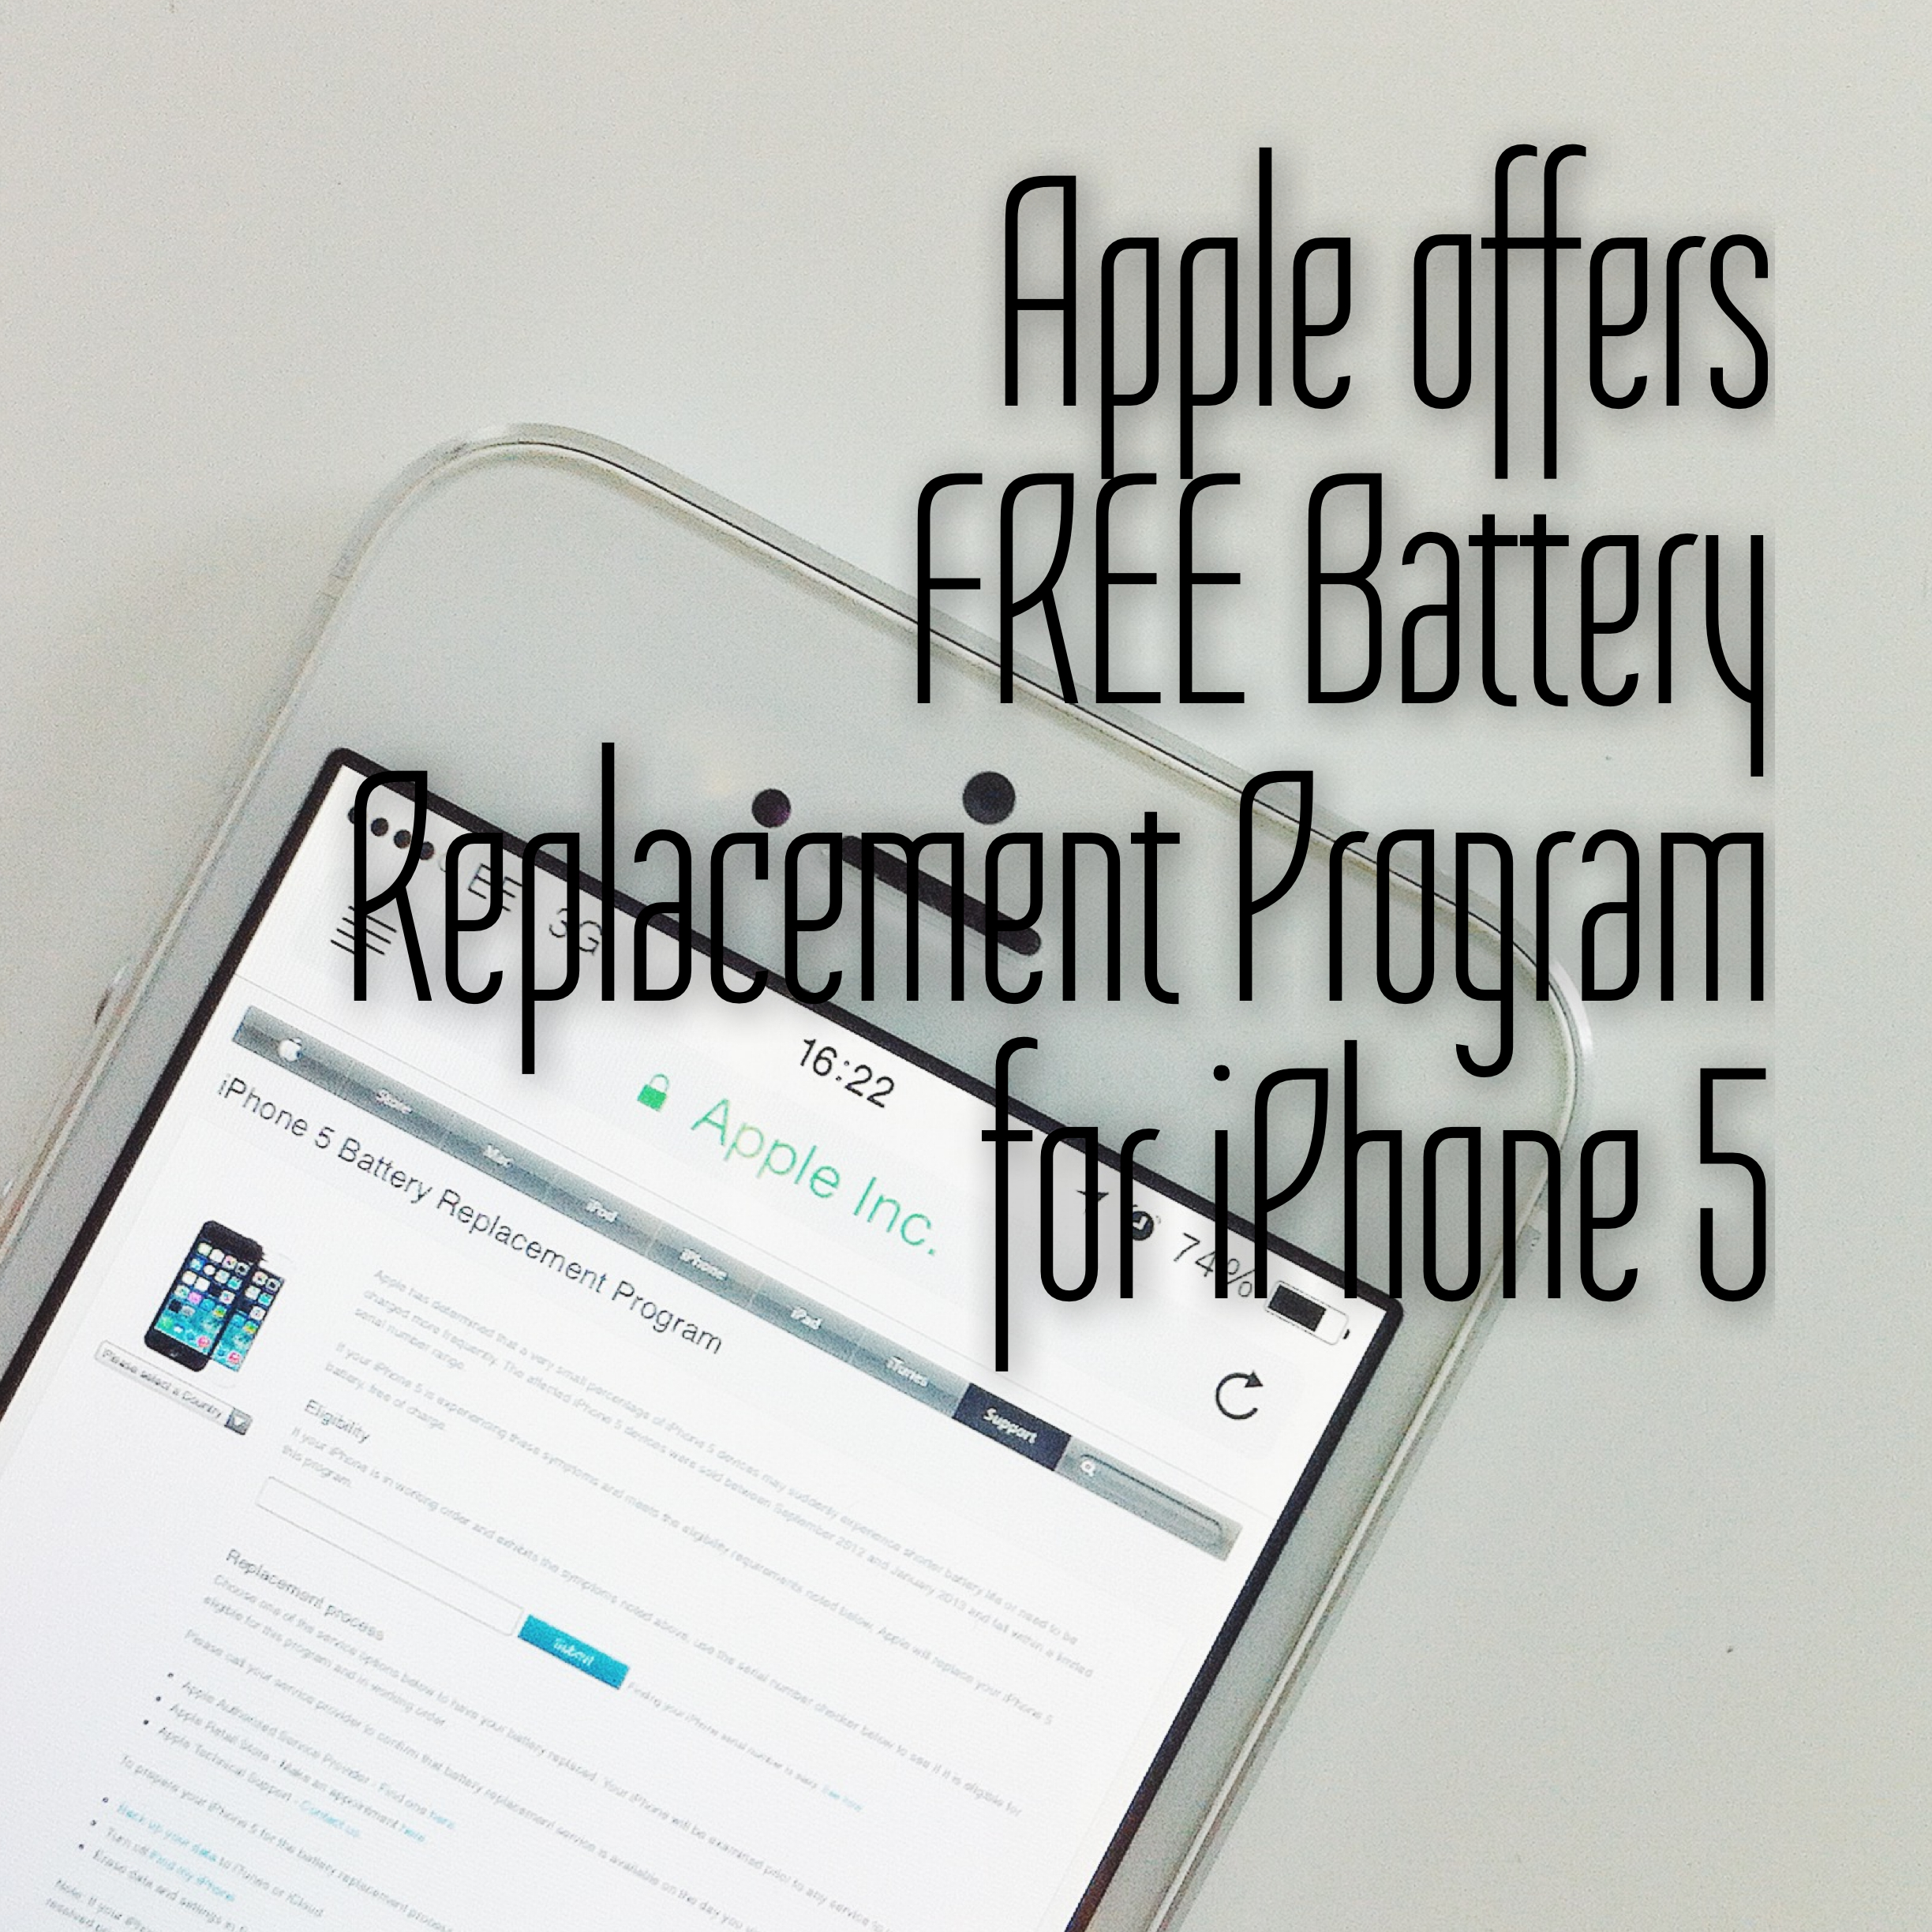 Apple Offers Battery Replacement Program for iPhone 5